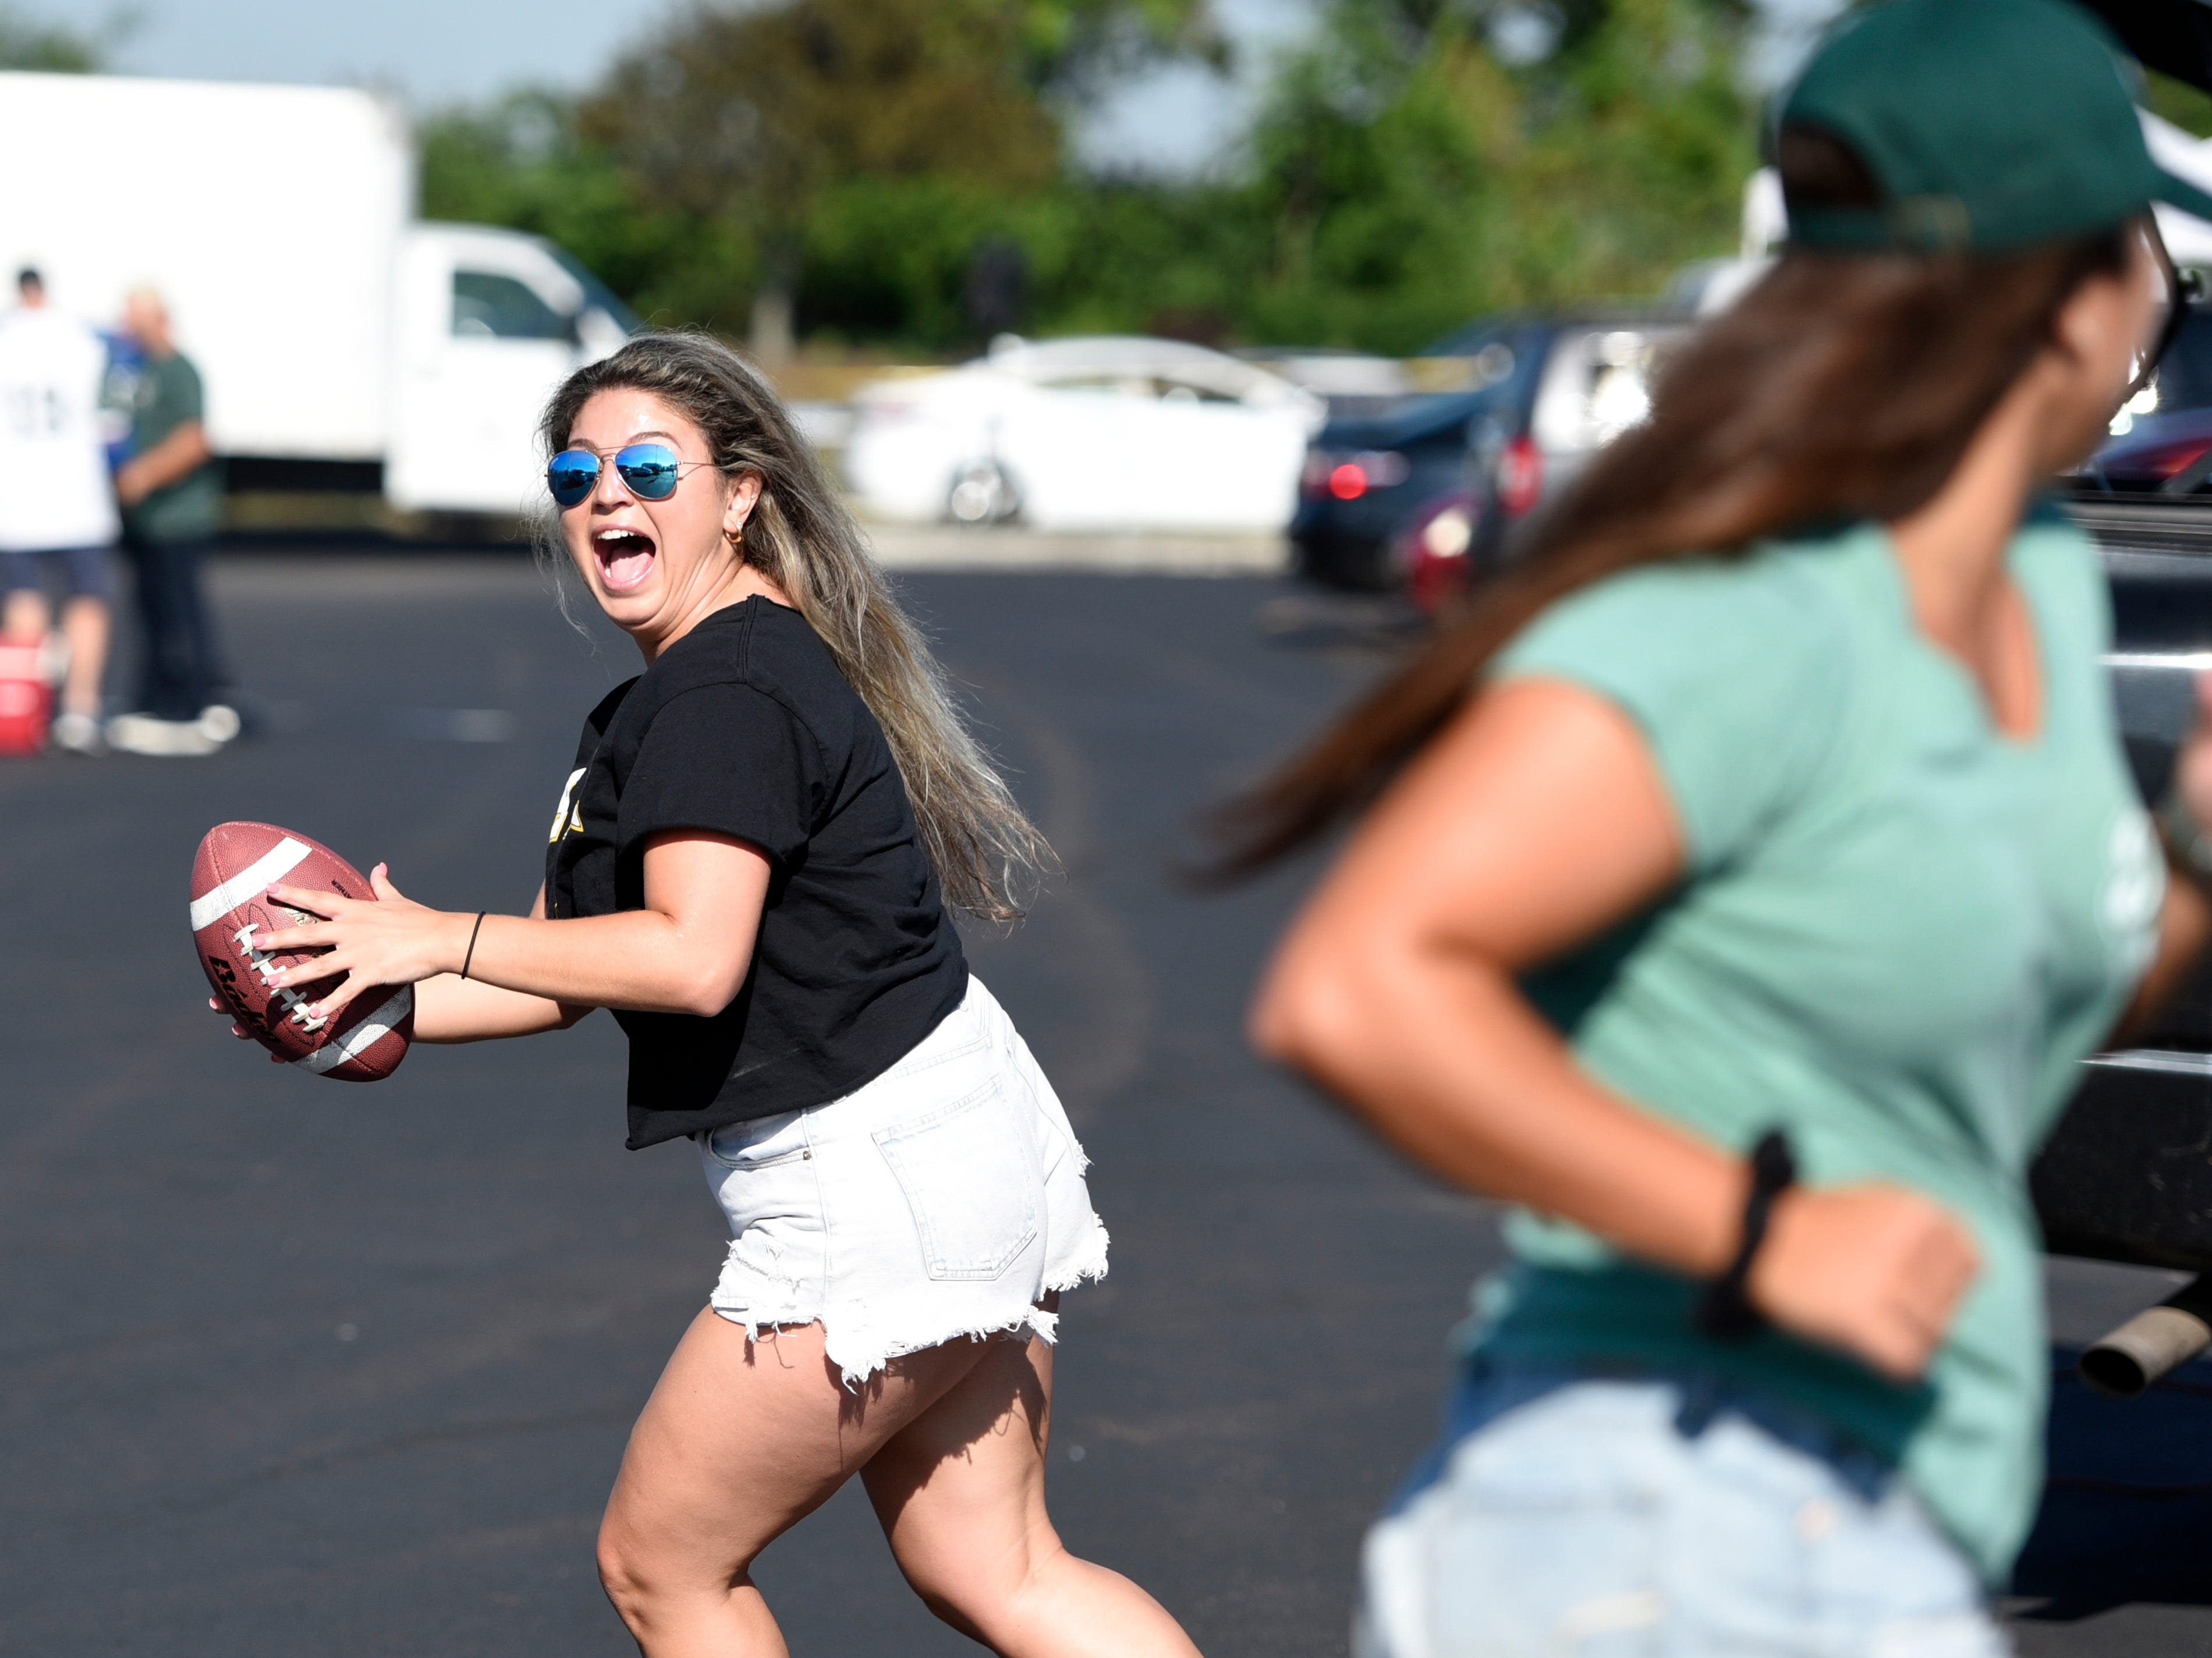 Taylor Boffalo, left, looks to throw to Victoria Vergona, both of Paramus, as they tailgate before the New York Jets face the Miami Dolphins in Week 2 at MetLife Stadium in East Rutherford, NJ on Sunday, September 16, 2018.